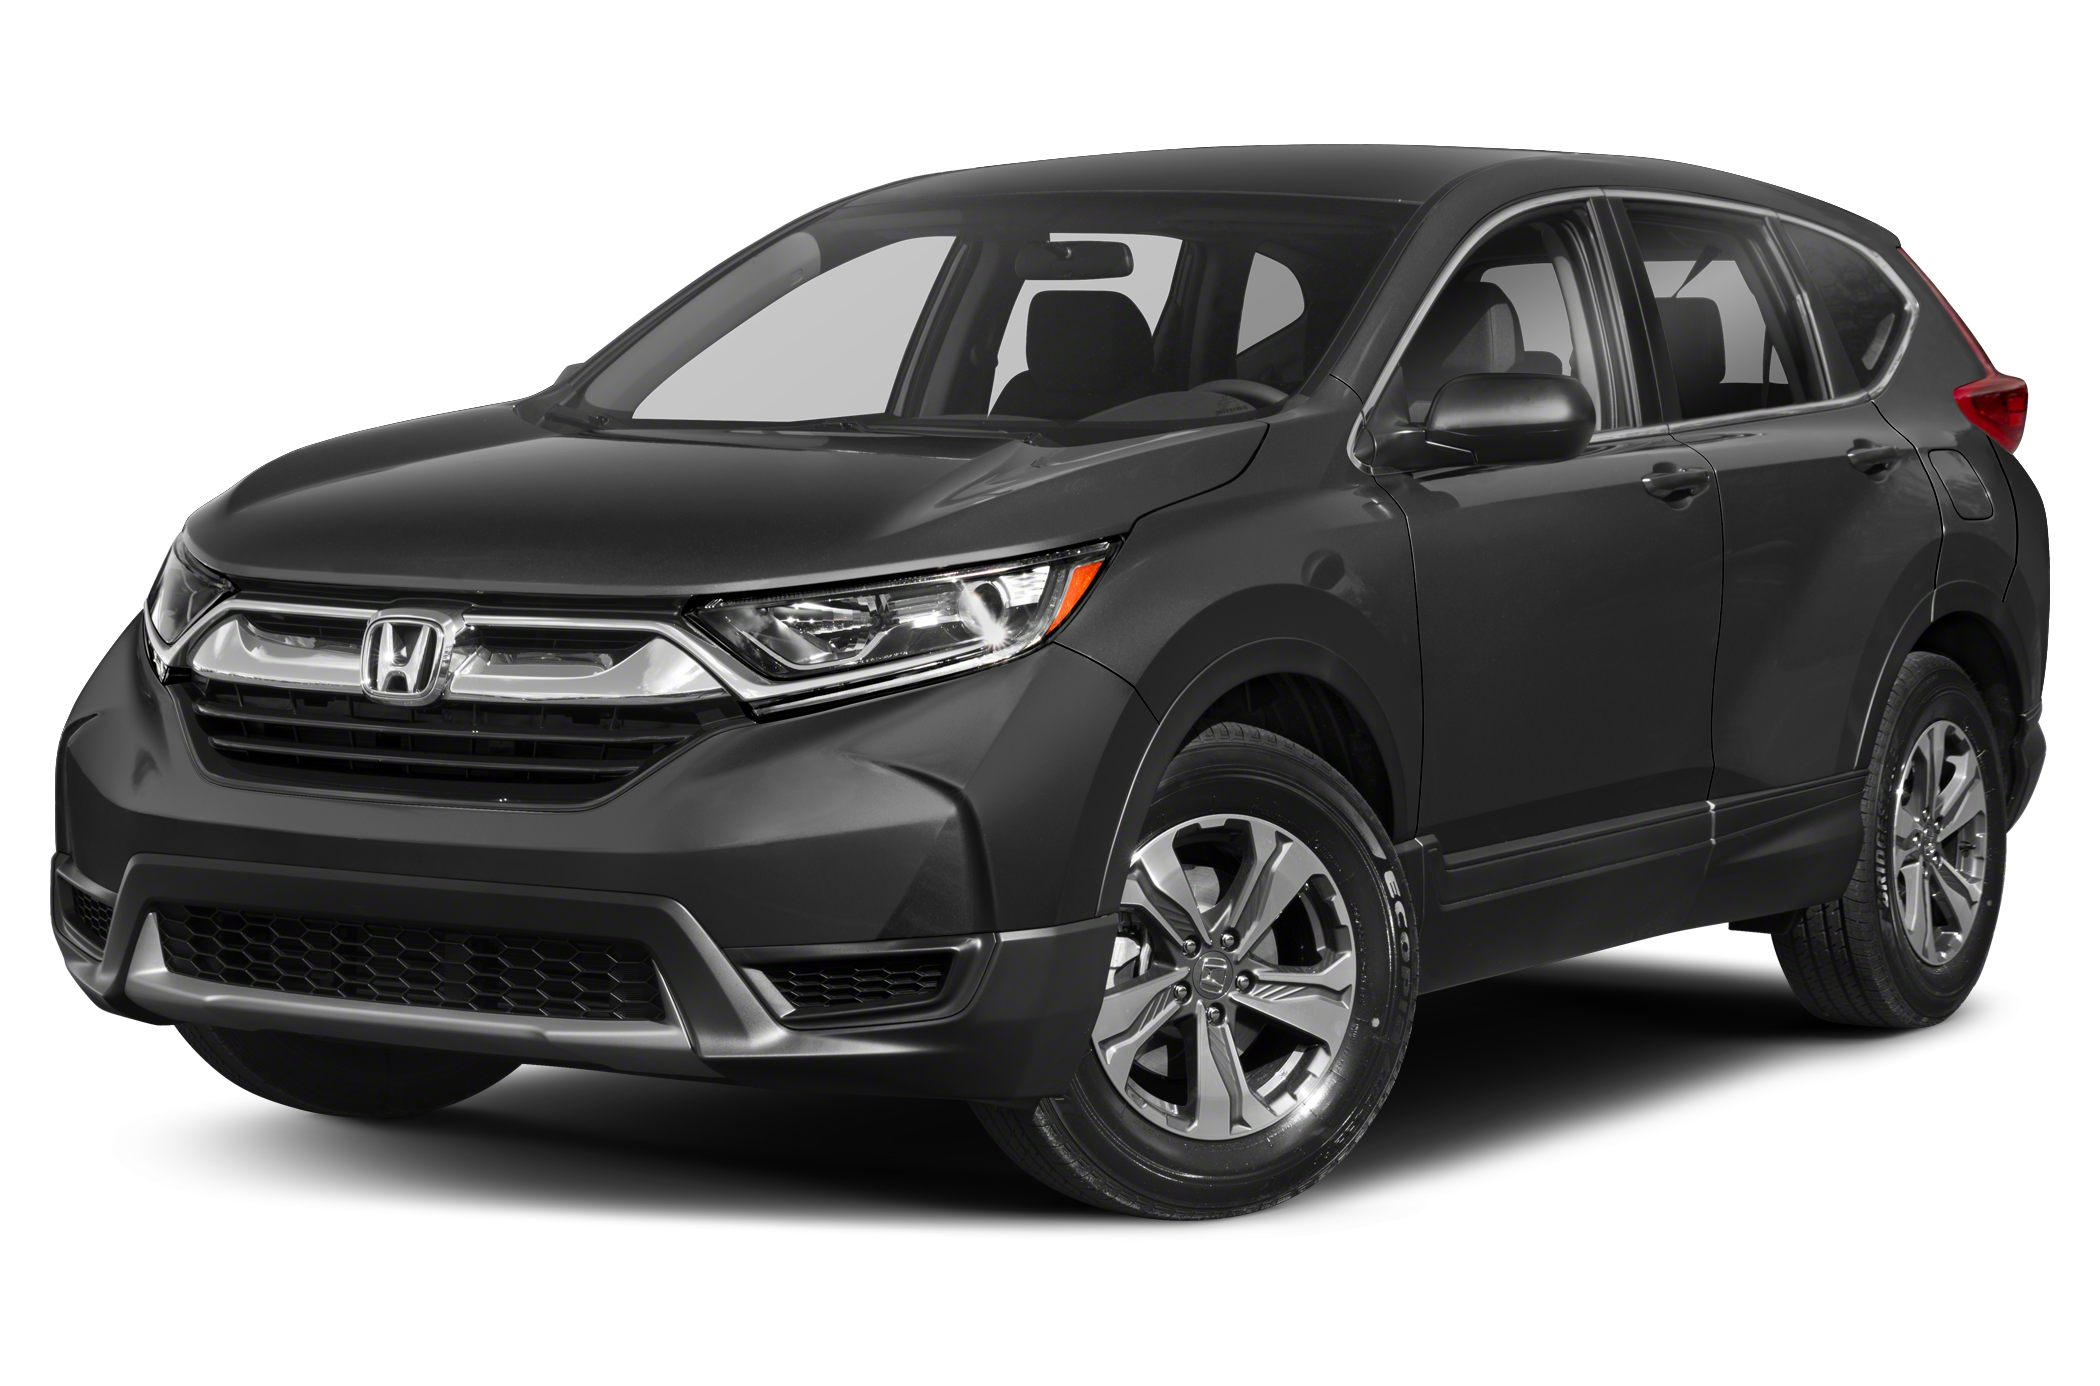 Honda Crv Colors 2018 >> See 2018 Honda Cr V Color Options Carsdirect